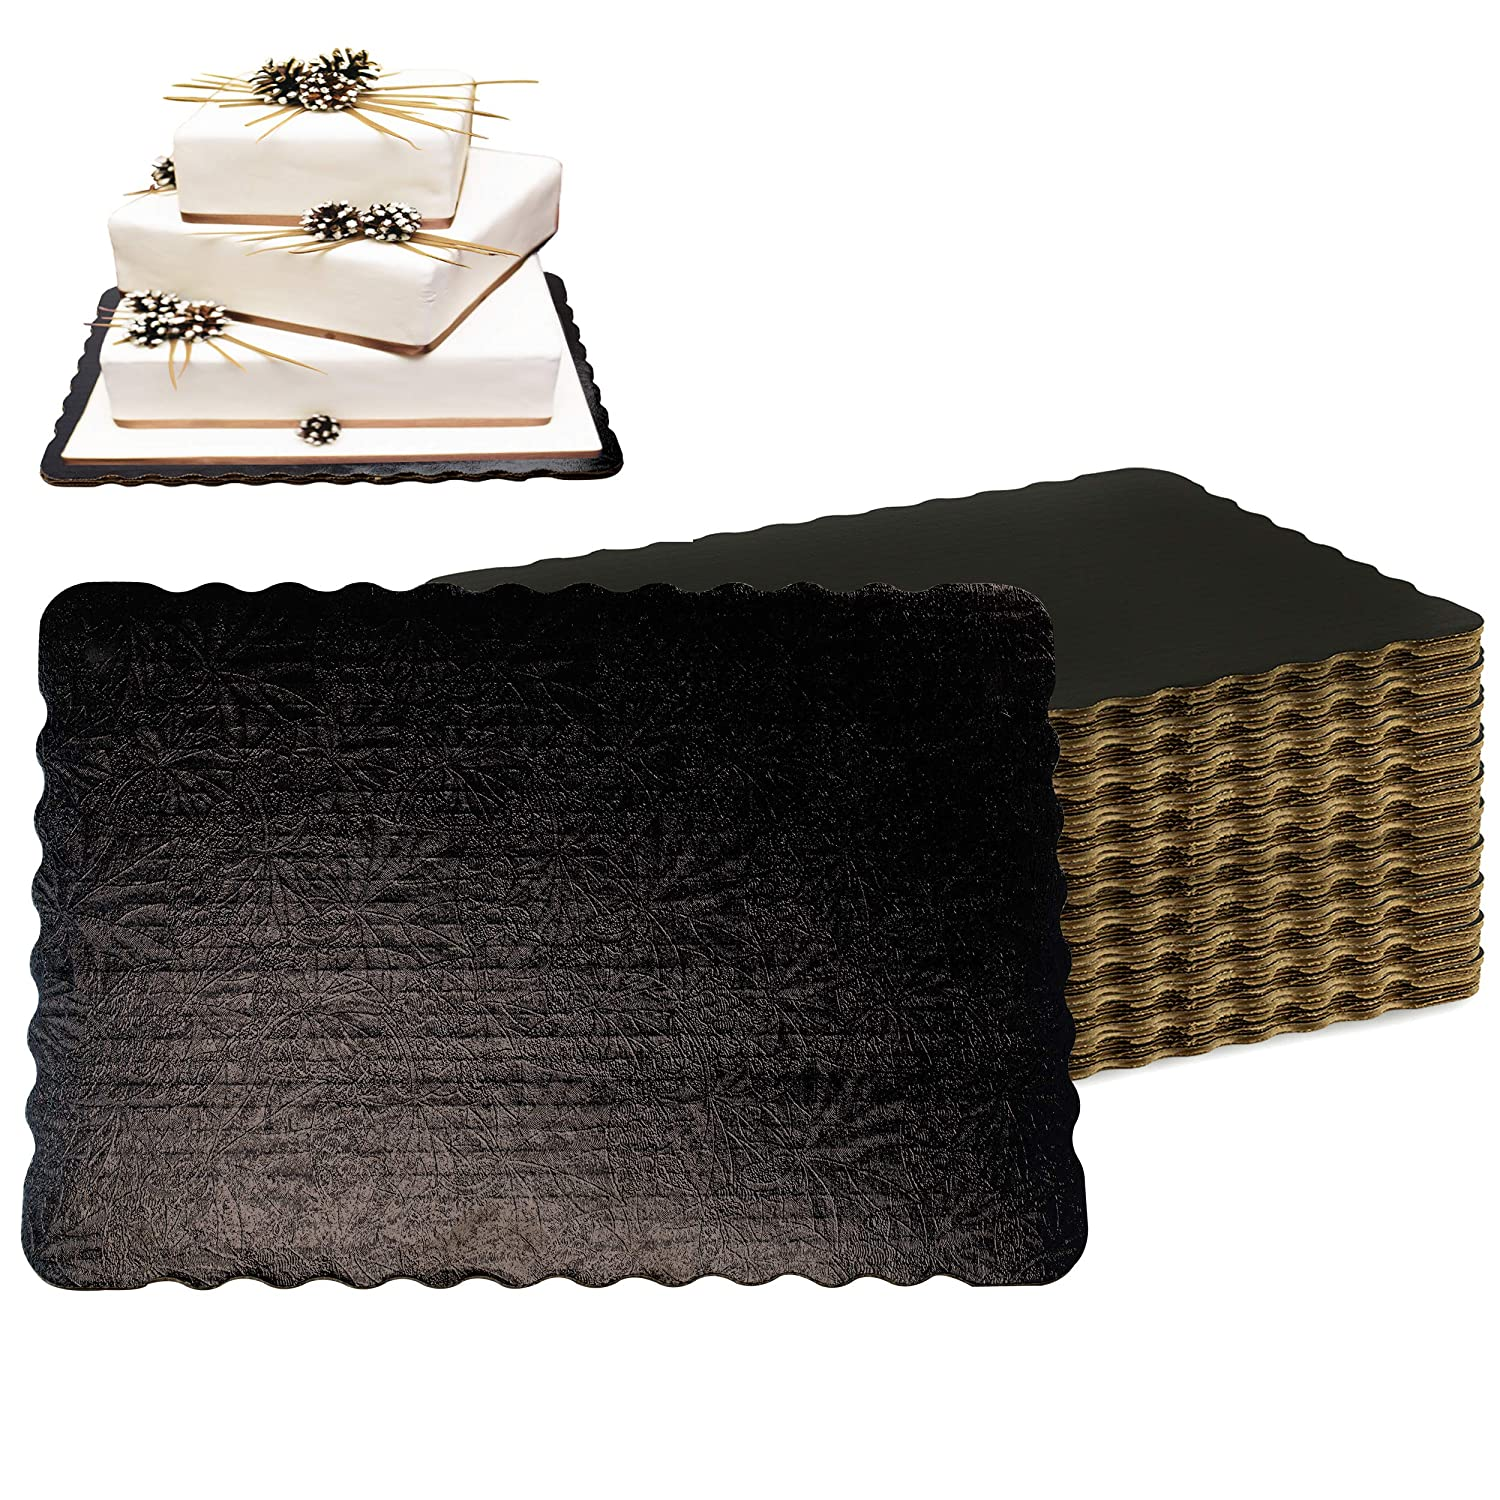 100 Pack 14x10 Inch Louisville-Jefferson County Mall Black Corrugated Re Board Laminated Cake Max 84% OFF -